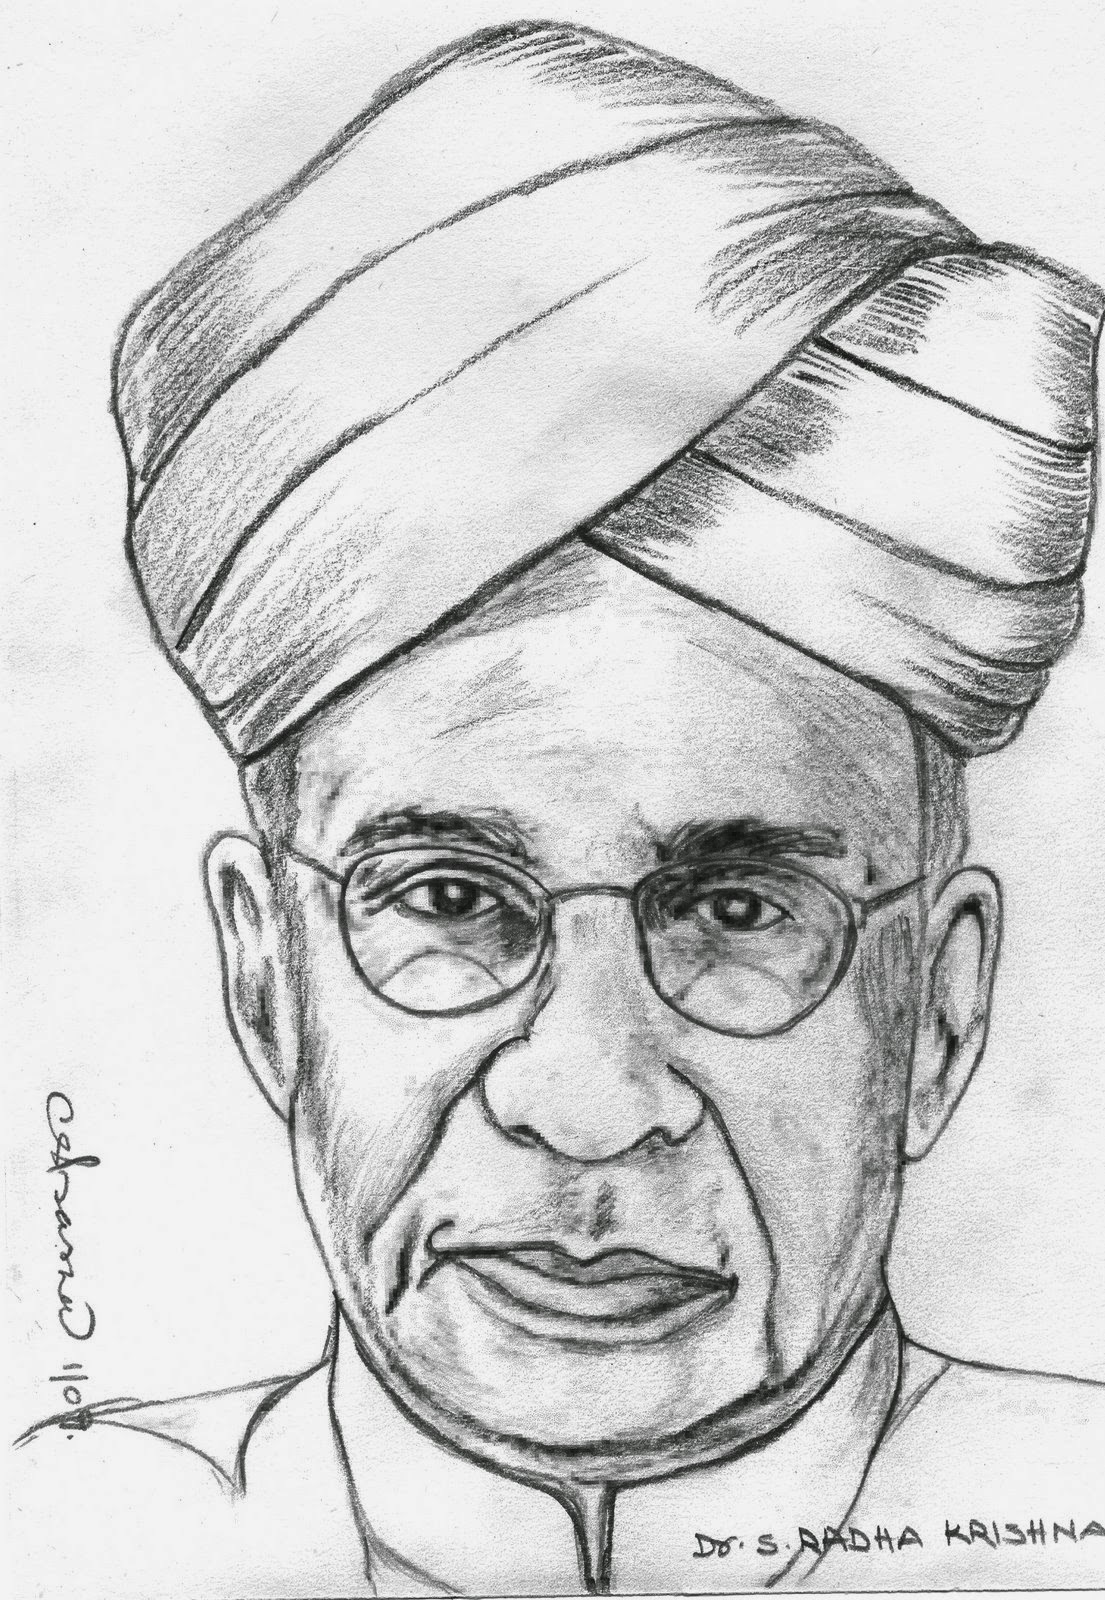 history of dr radhakrishnan in tamil Sarvepalli radhakrishnan essay in hindi, hindi essay on dr sarvepalli radhakrishnan  complete hindi essay for class 10, class 12 and dr s radhakrishnan in hindi.